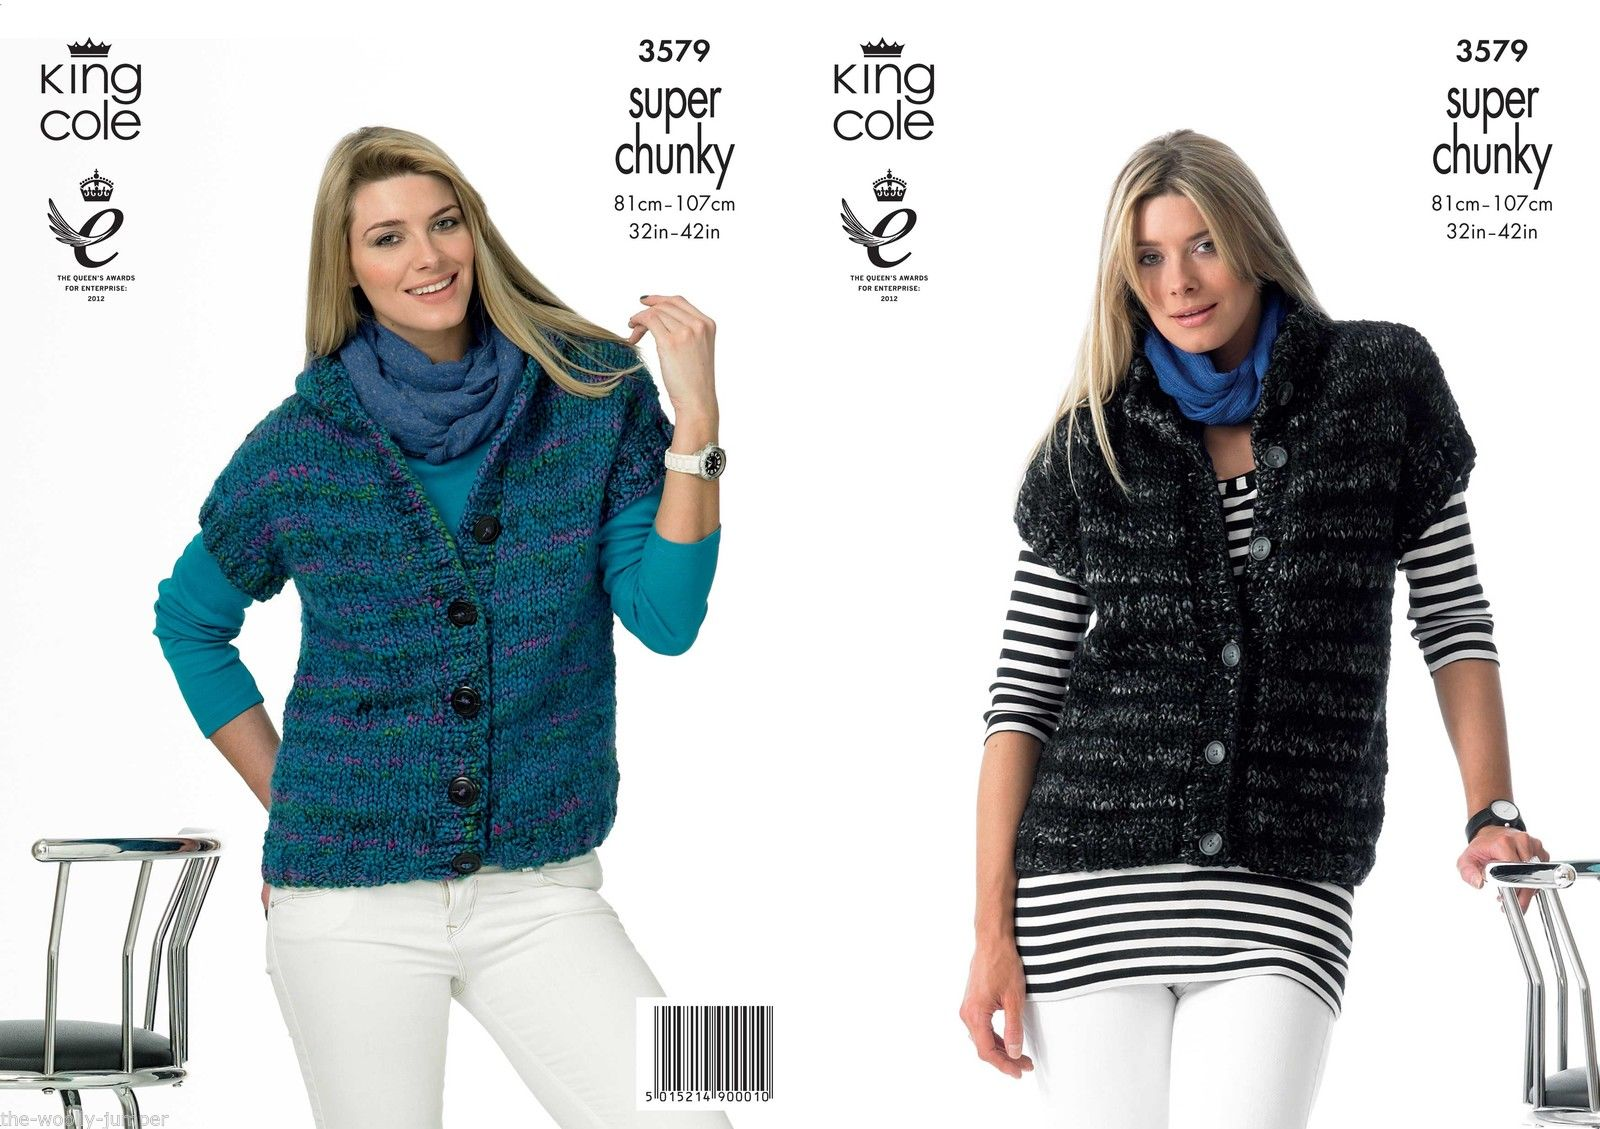 3579 - KING COLE GYPSY SUPER CHUNKY GILET WAISTCOAT KNITTING PATTERN - TO FIT...